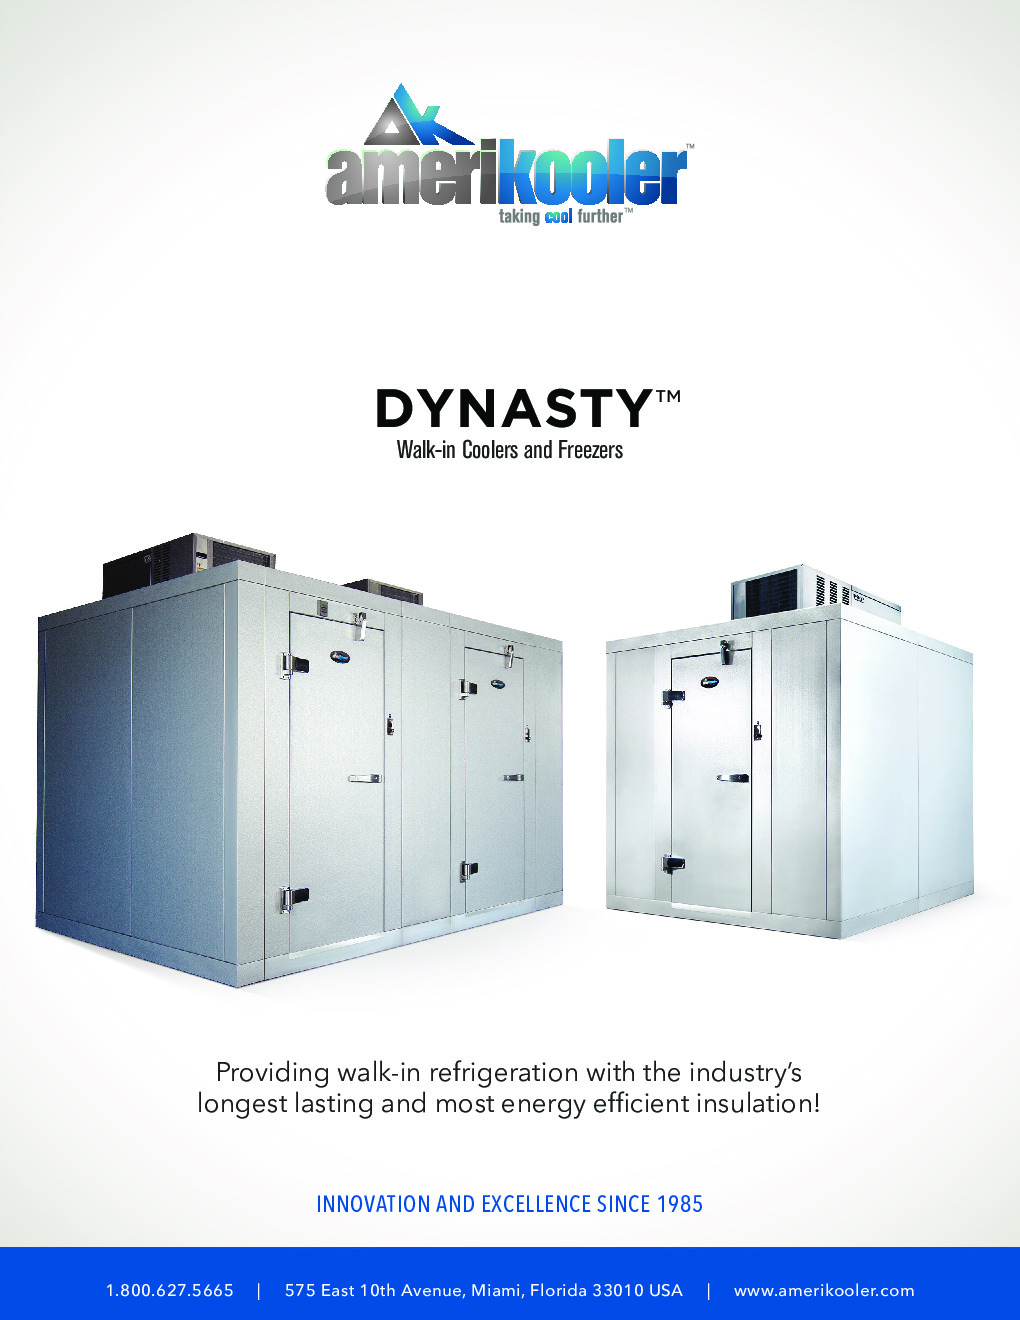 AmeriKooler DW091777N-5/12-SC 9' X 17' Walk-In Cooler, 12' L Cooler without Floor and 5' L Freezer, Self Contained